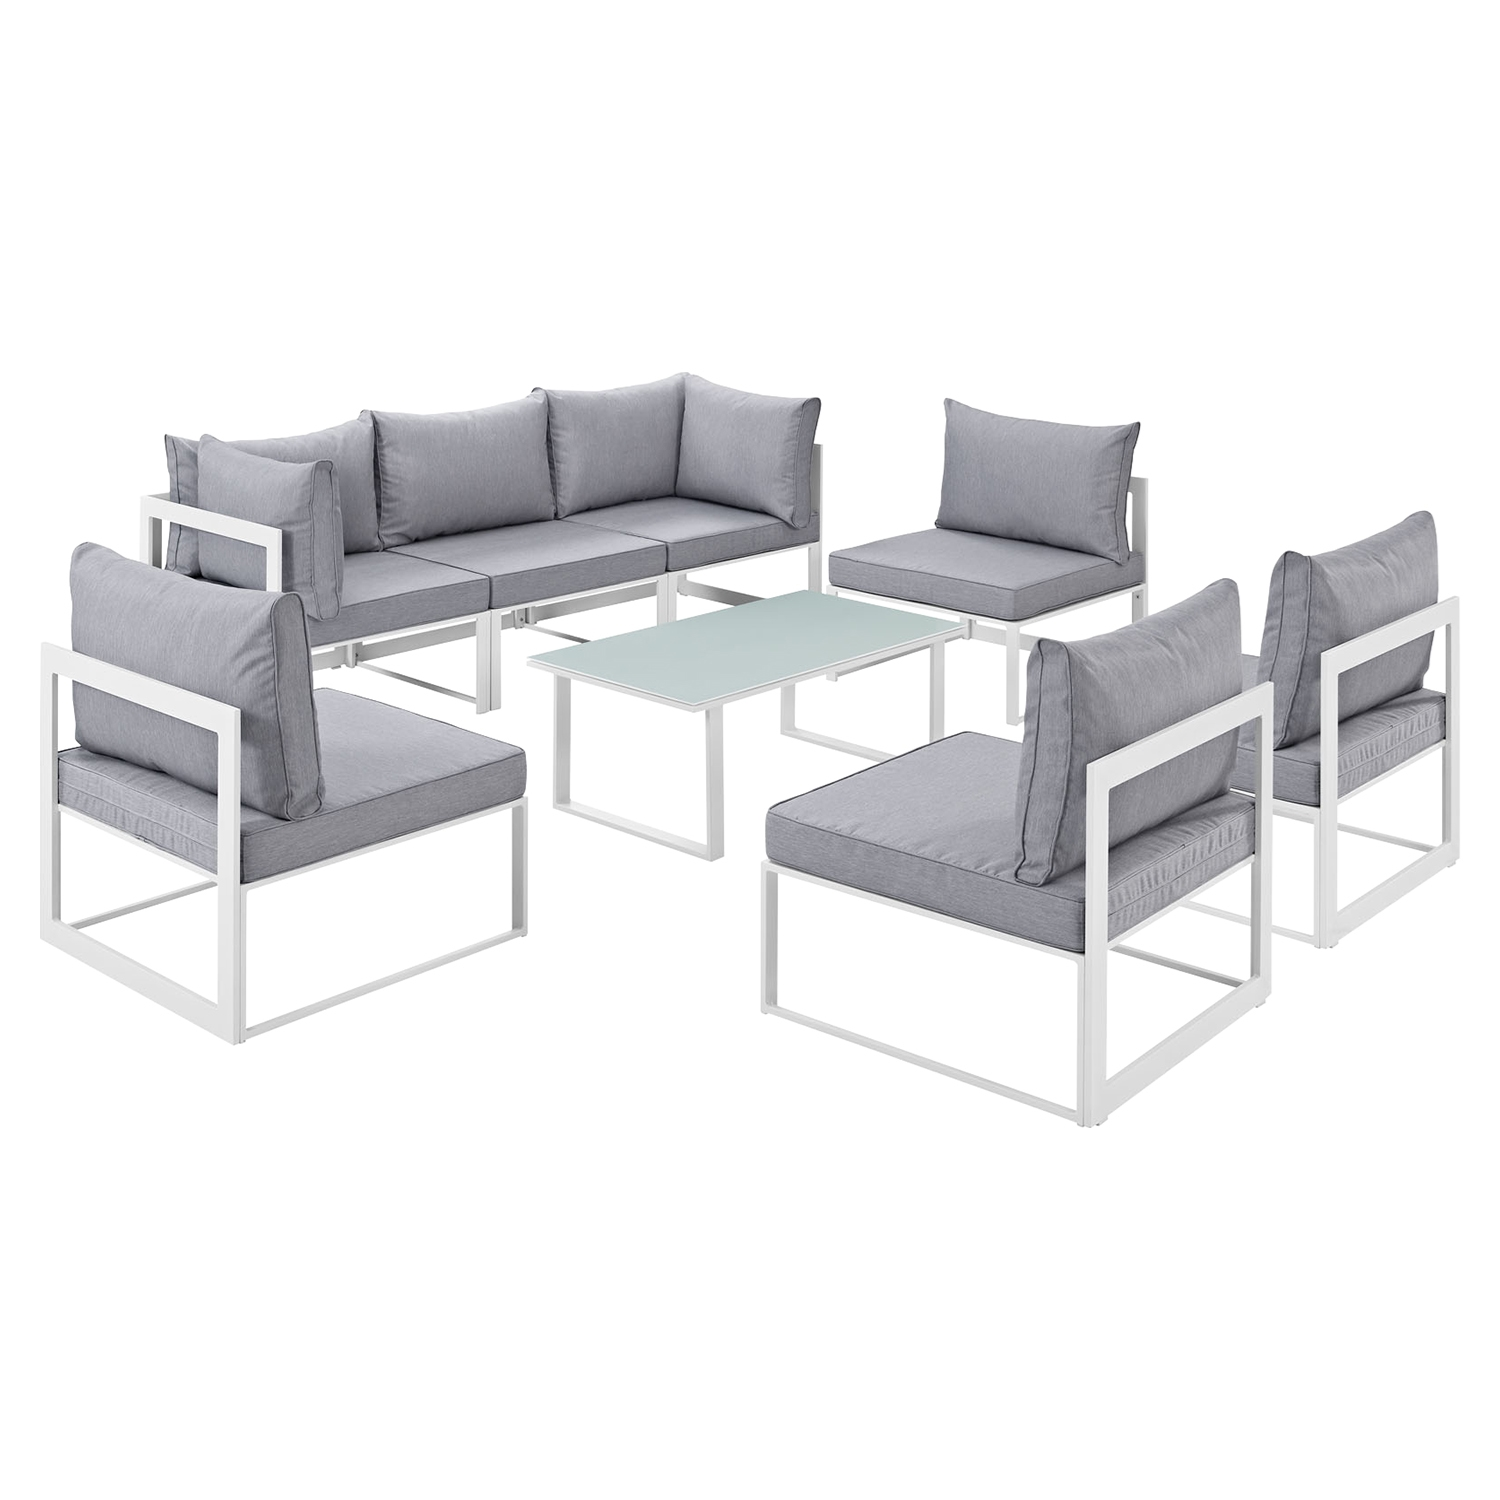 Fortuna 8 Pieces Armless Patio Sectional Sofa - White Frame, Gray Cushion - EEI-1730-WHI-GRY-SET